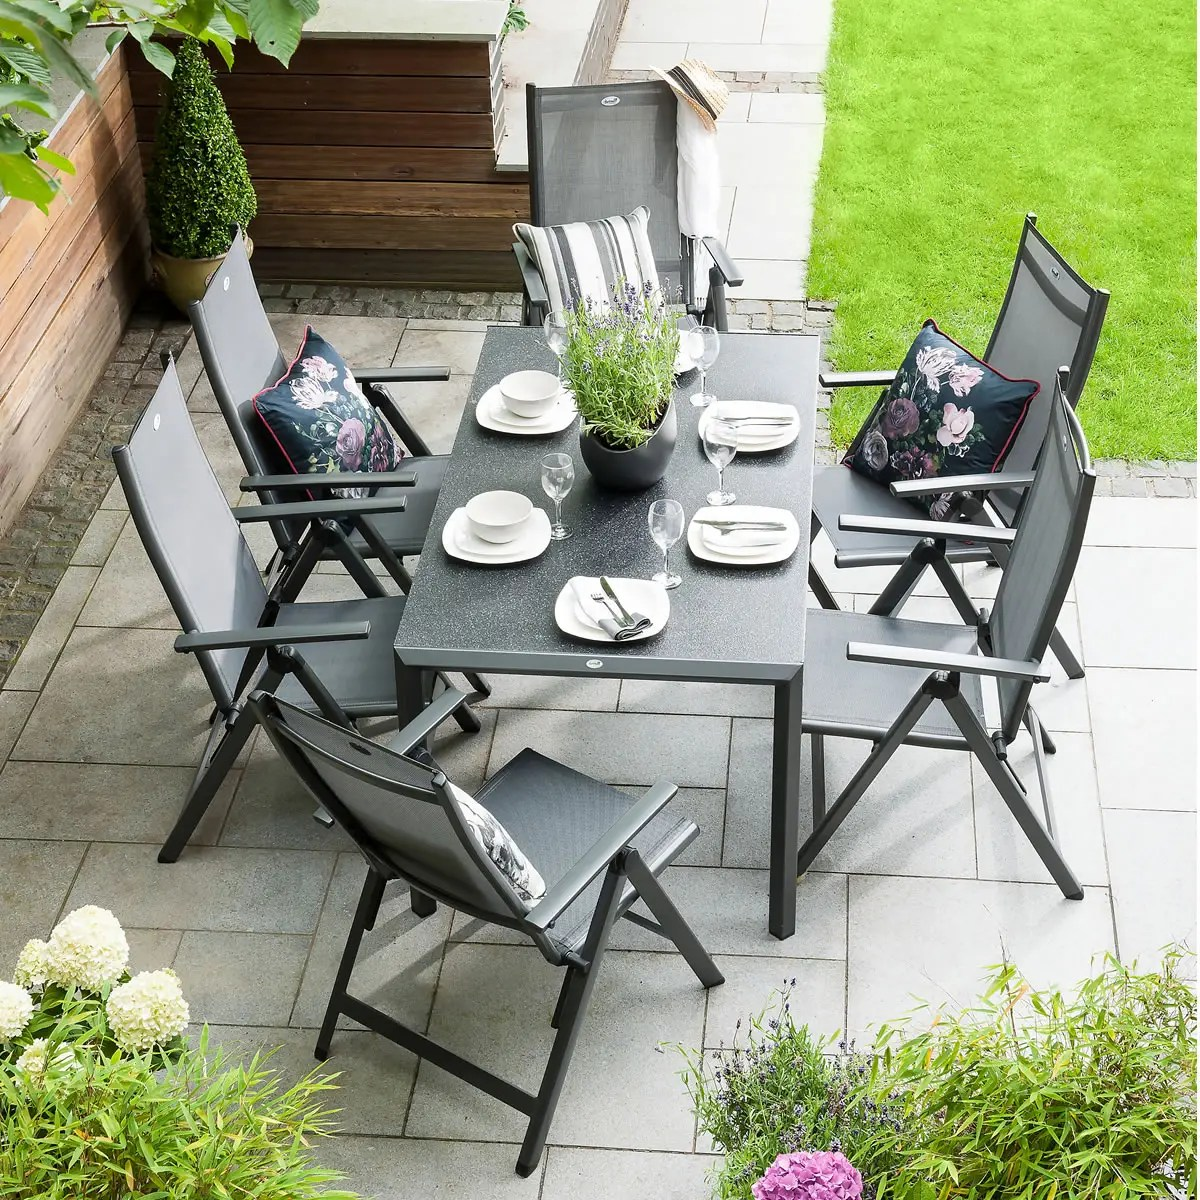 aluminium reclining garden chairs uk blue chair slipcovers furniture sale | clearance